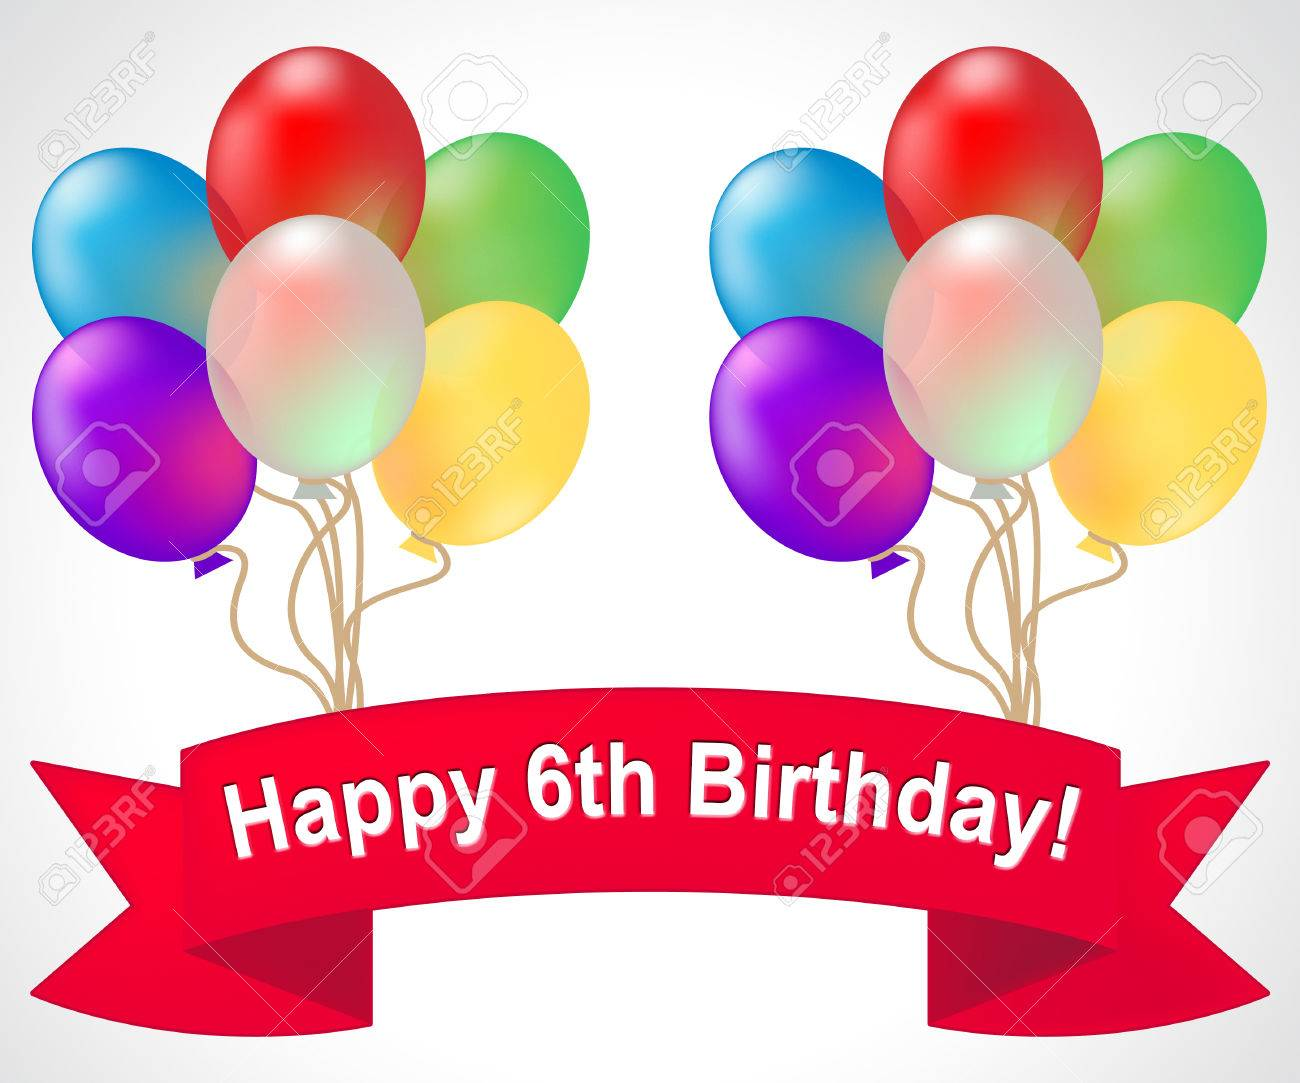 Happy Sixth Birthday Balloons Meaning 6th Party Celebration 3d Illustration Stock